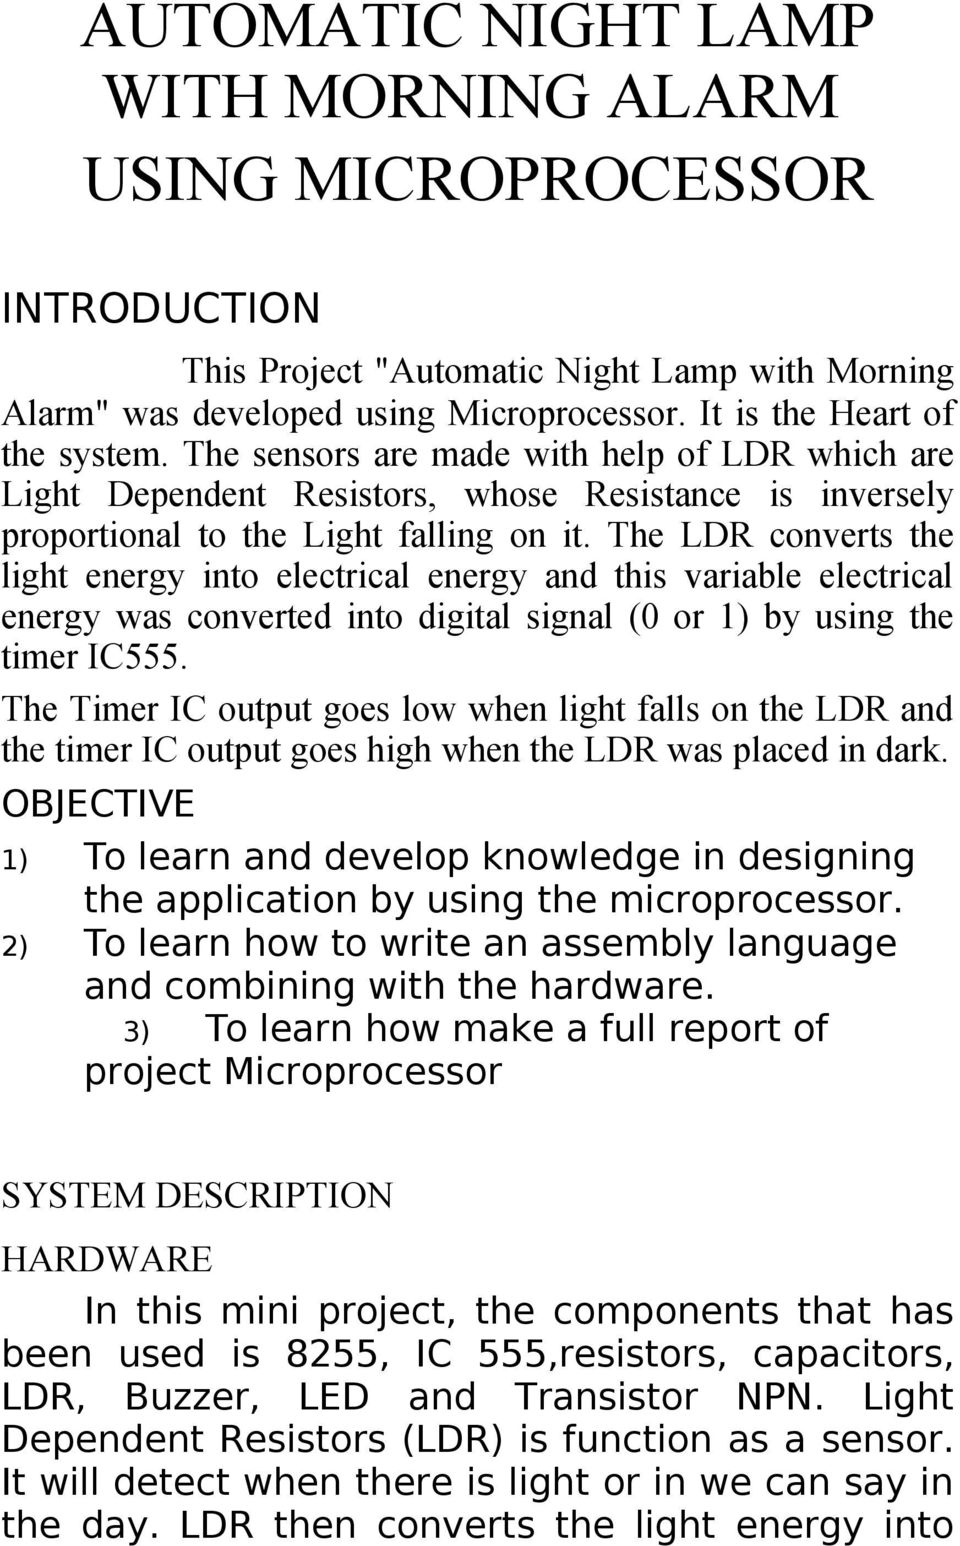 Automatic Night Lamp With Morning Alarm Using Microprocessor Pdf Room Temperature Controller By Pic16f873 The Ldr Converts Light Energy Into Electrical And This Variable Was Converted